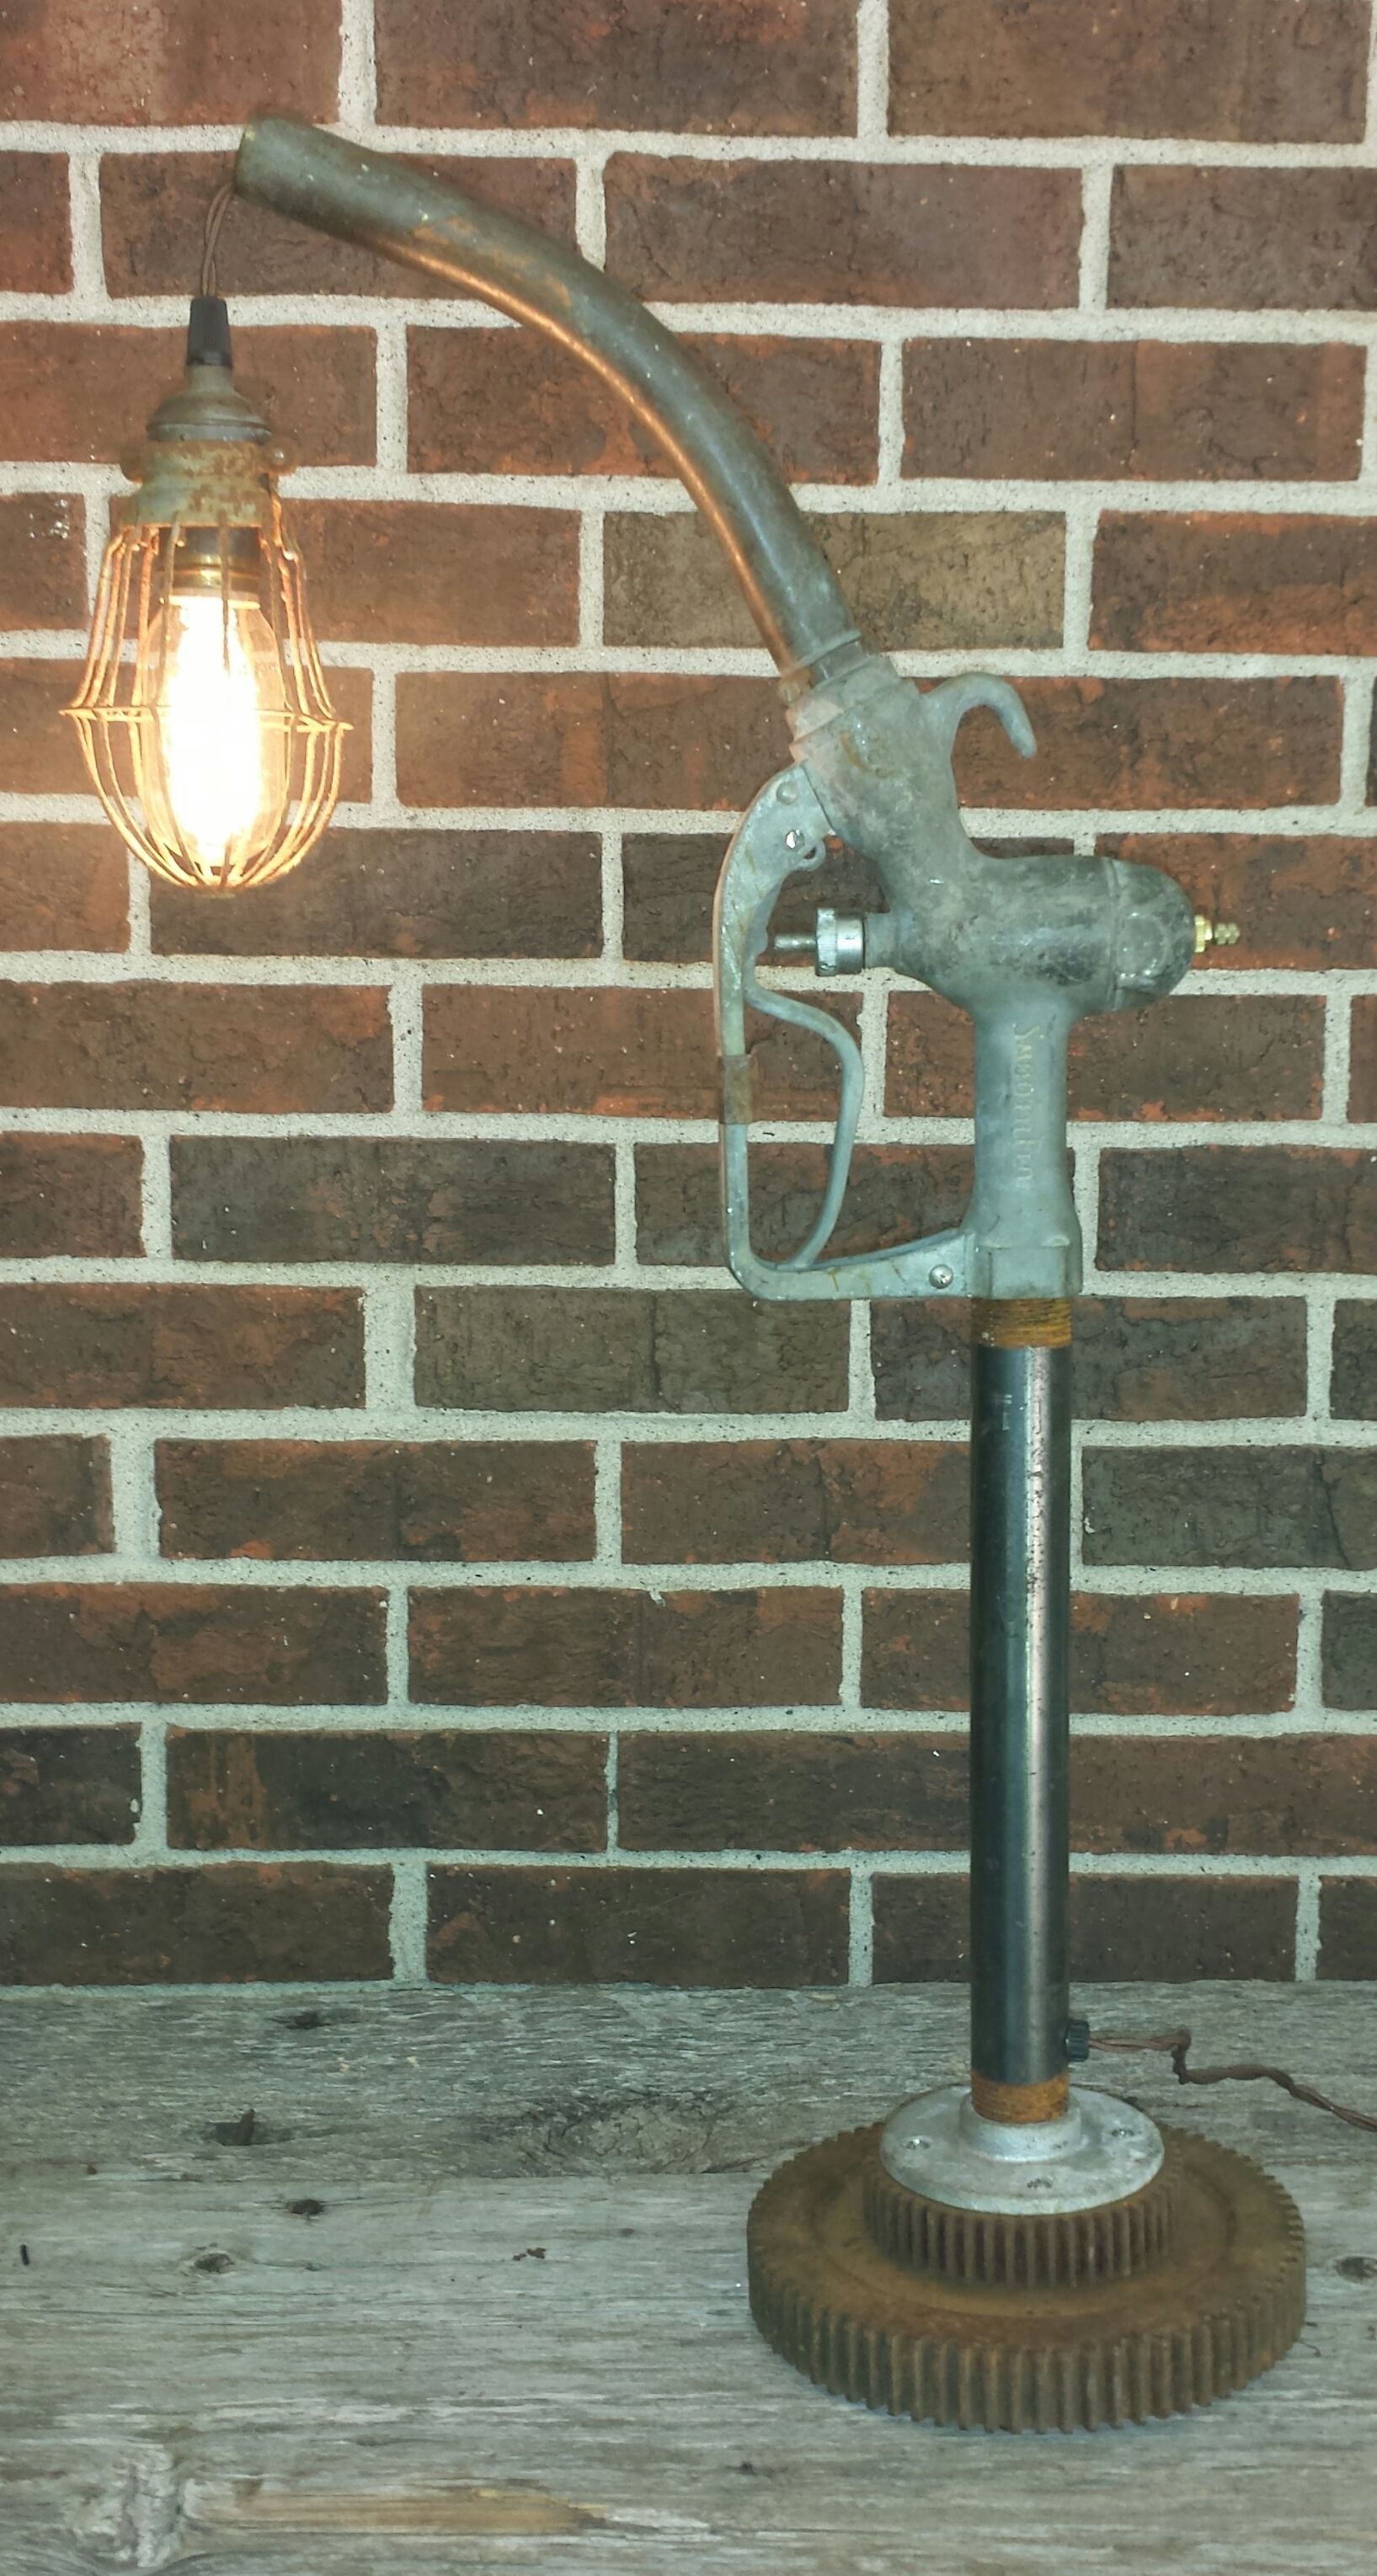 Custom Table Lamp Using Repurposed Vintage Trouble Light, Gas Pump Nozzle  And Cast Iron Base